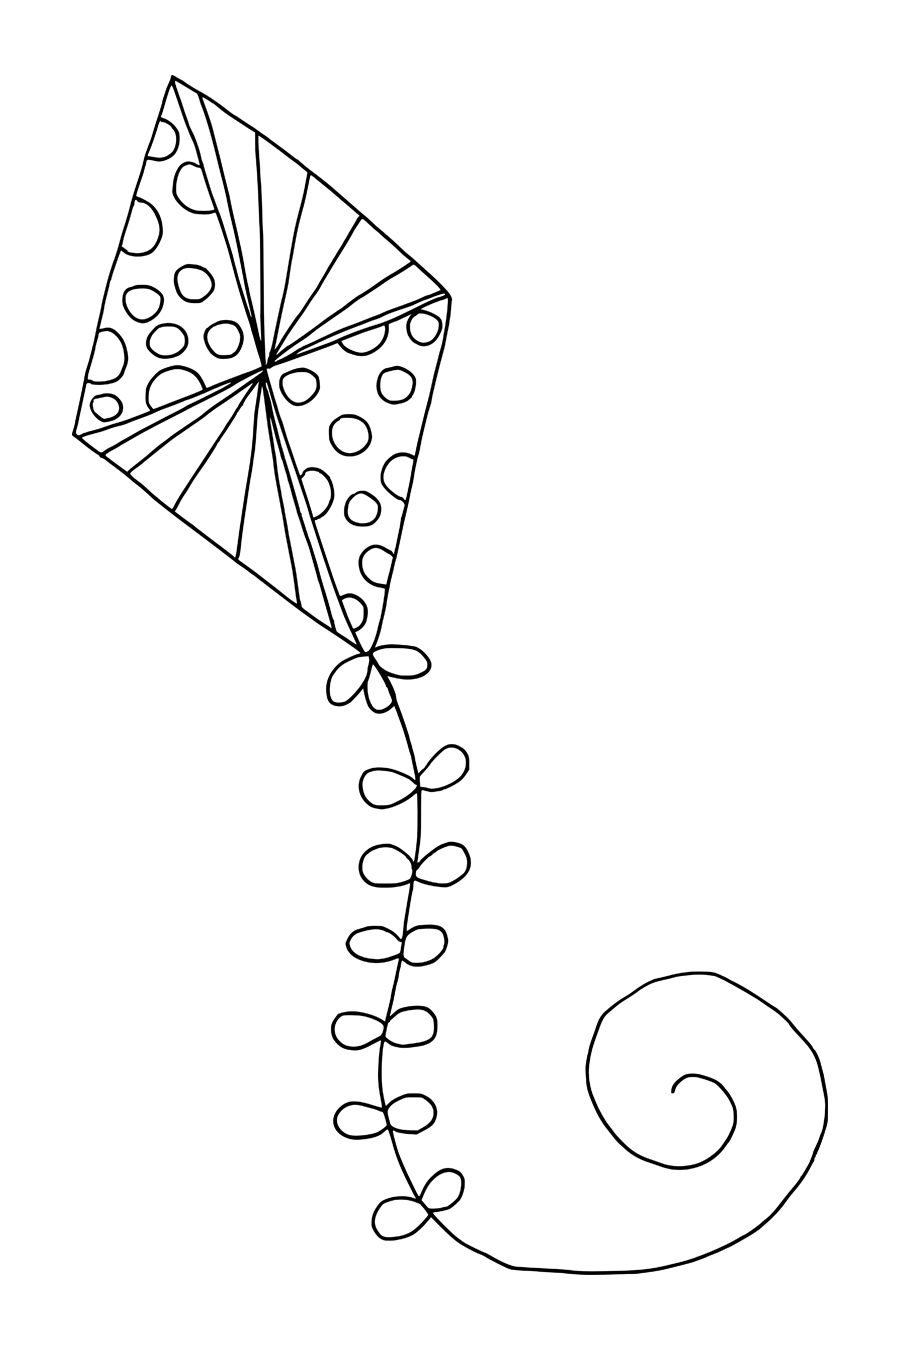 Printable Kite Coloring Page